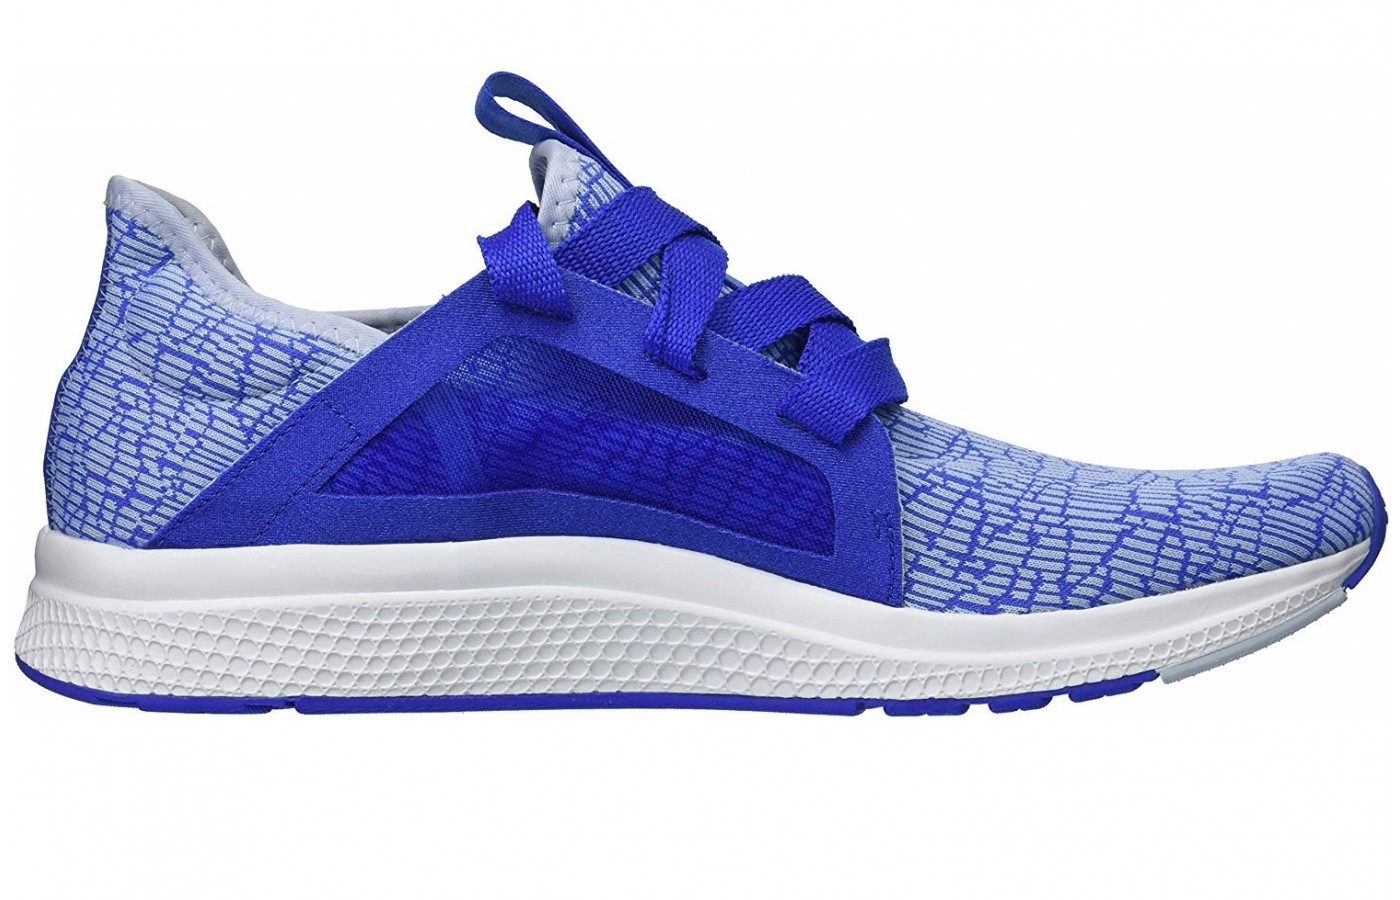 Adidas Edge Lux Side View 2